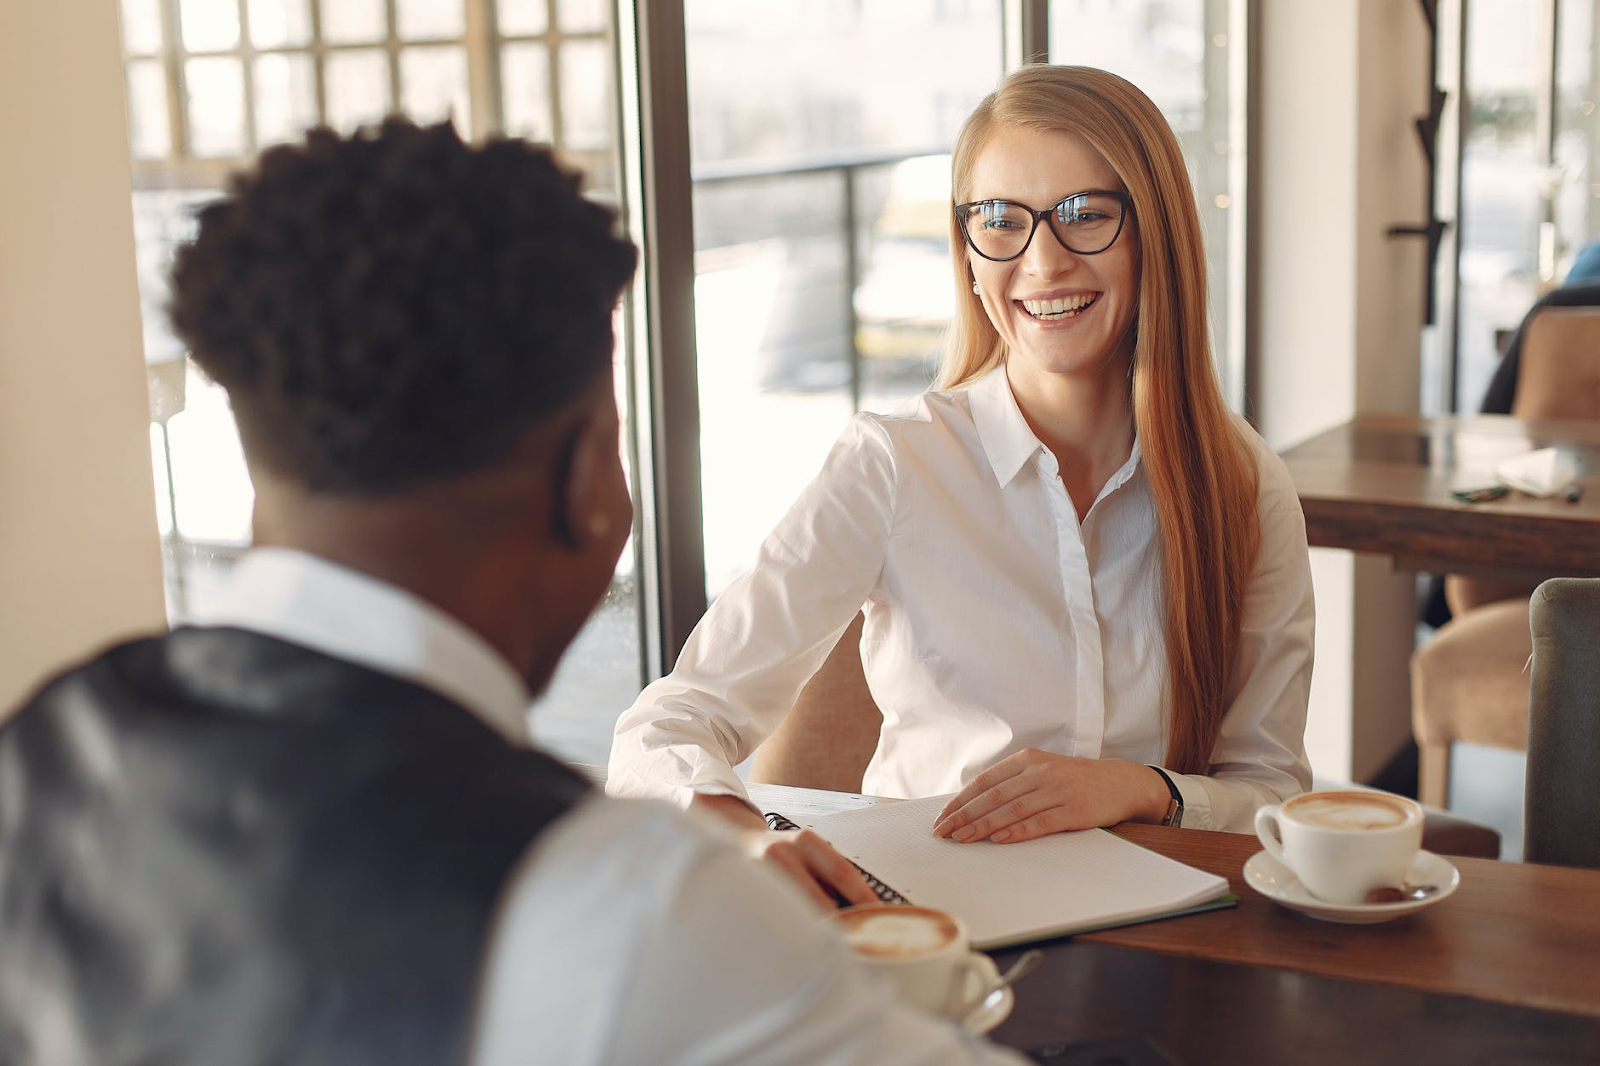 Building Relationships In The Workplace